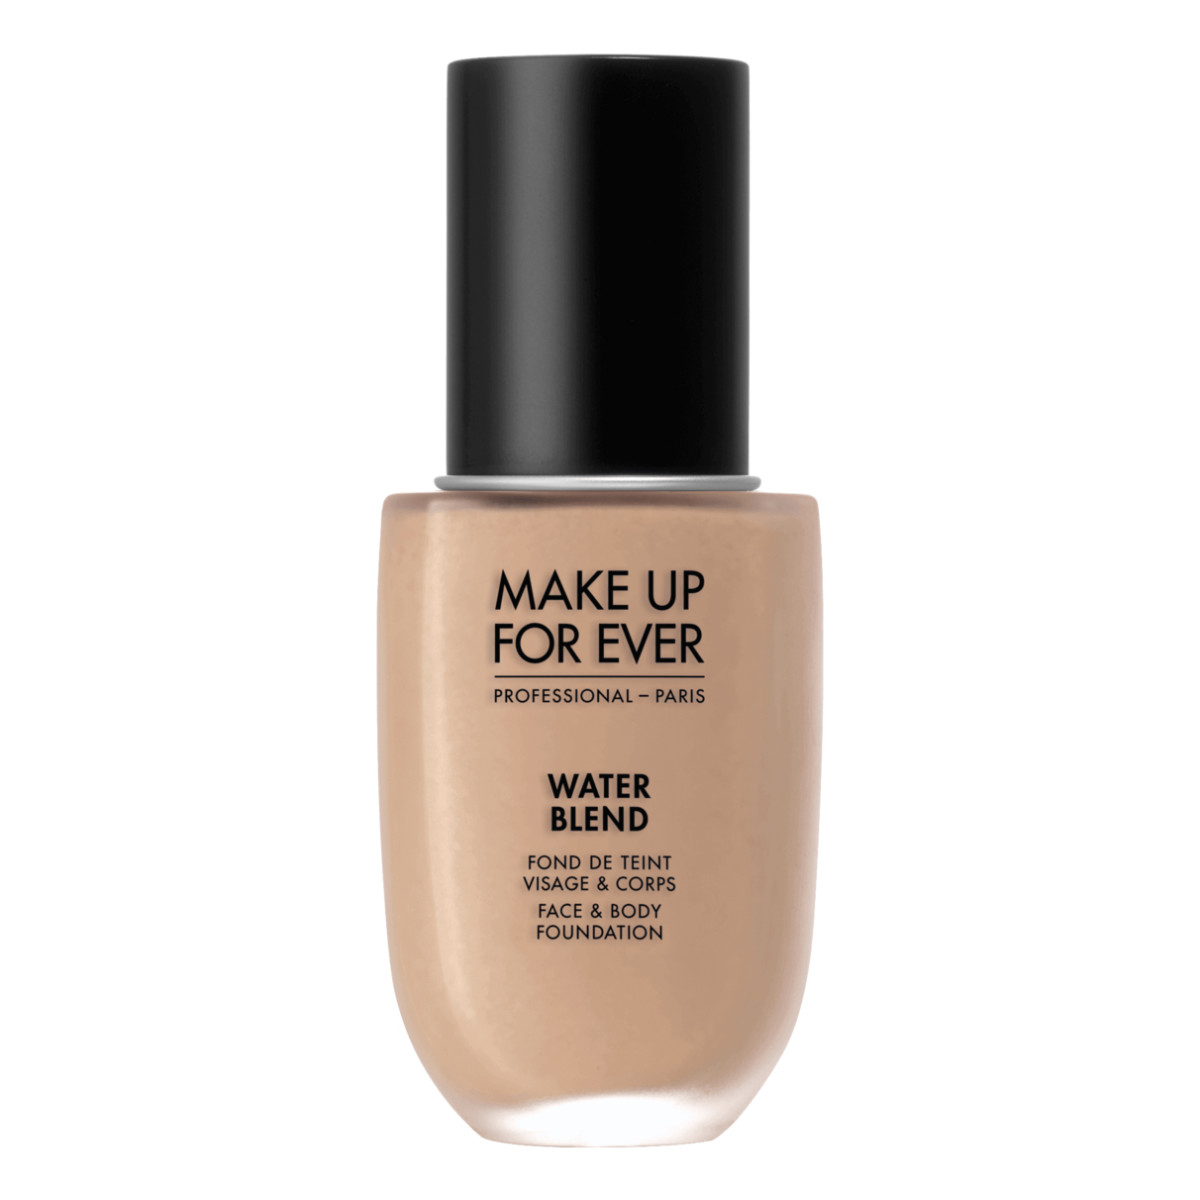 Make Up For Ever Water Blend Face & Body Foundation, $43, available at Sephora.